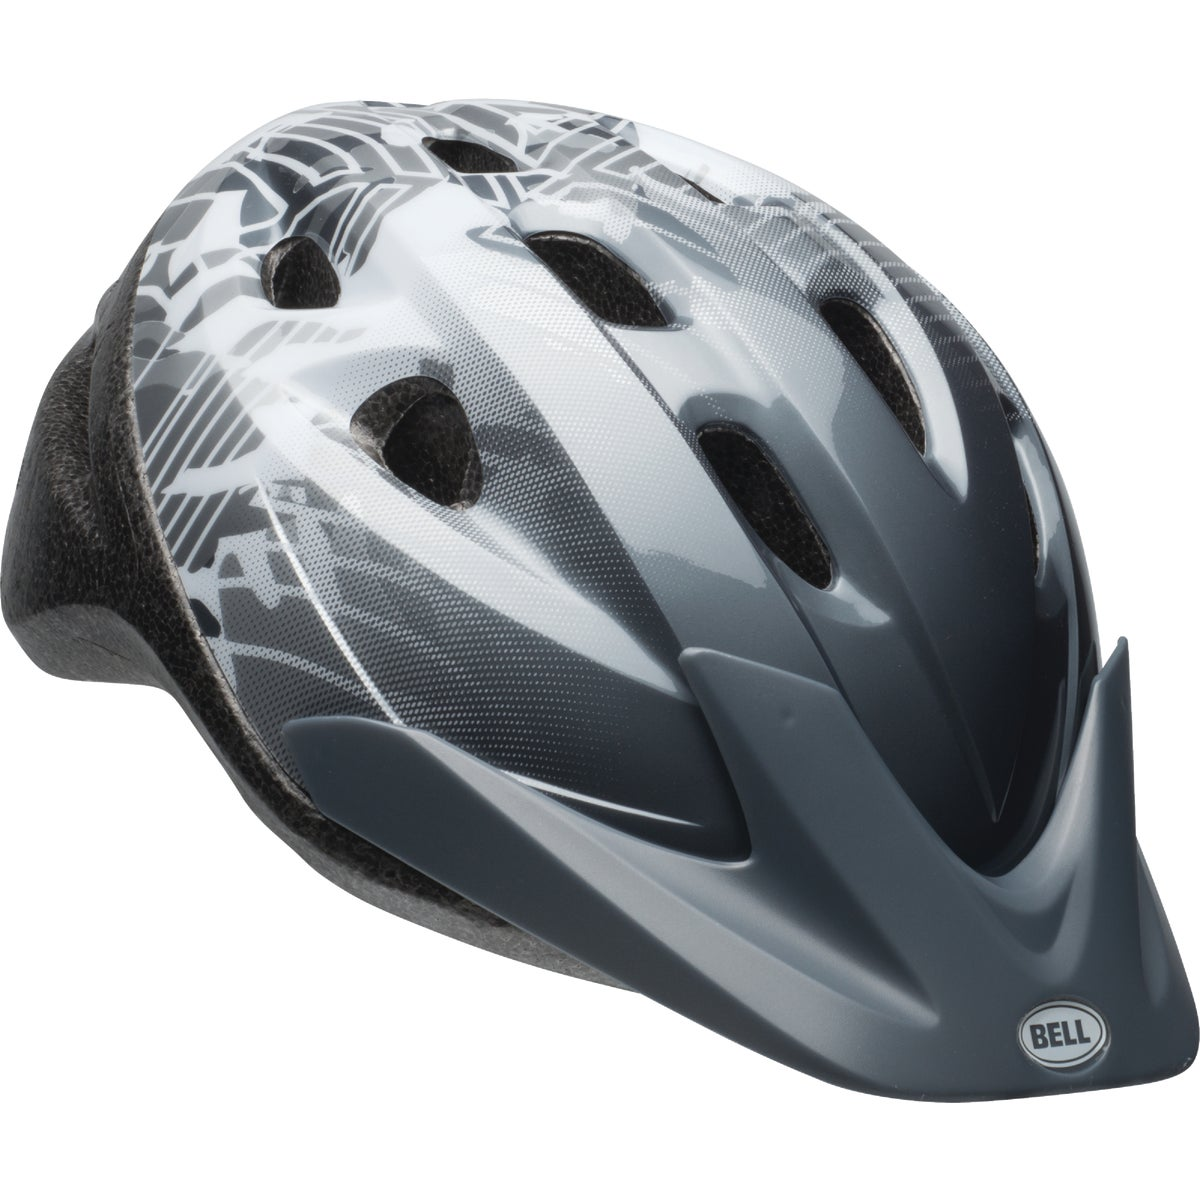 CHILD'S TRU FIT HELMET - 7020859 by Bell Sports